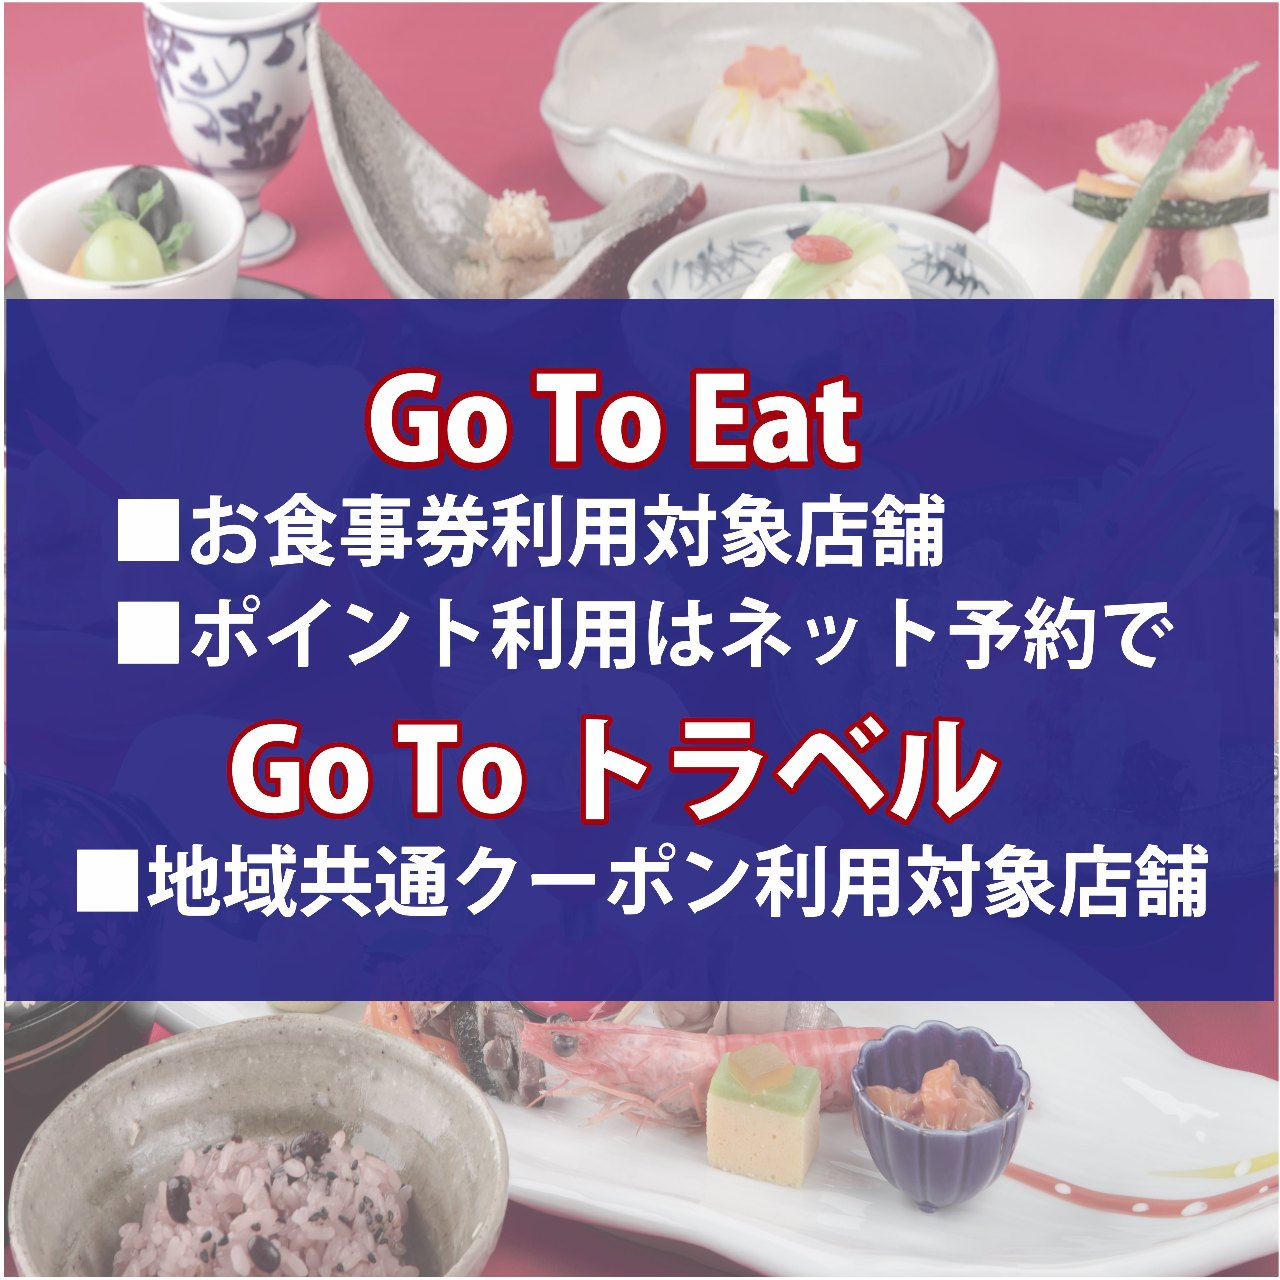 Go To キャンペーン 利用対象店舗